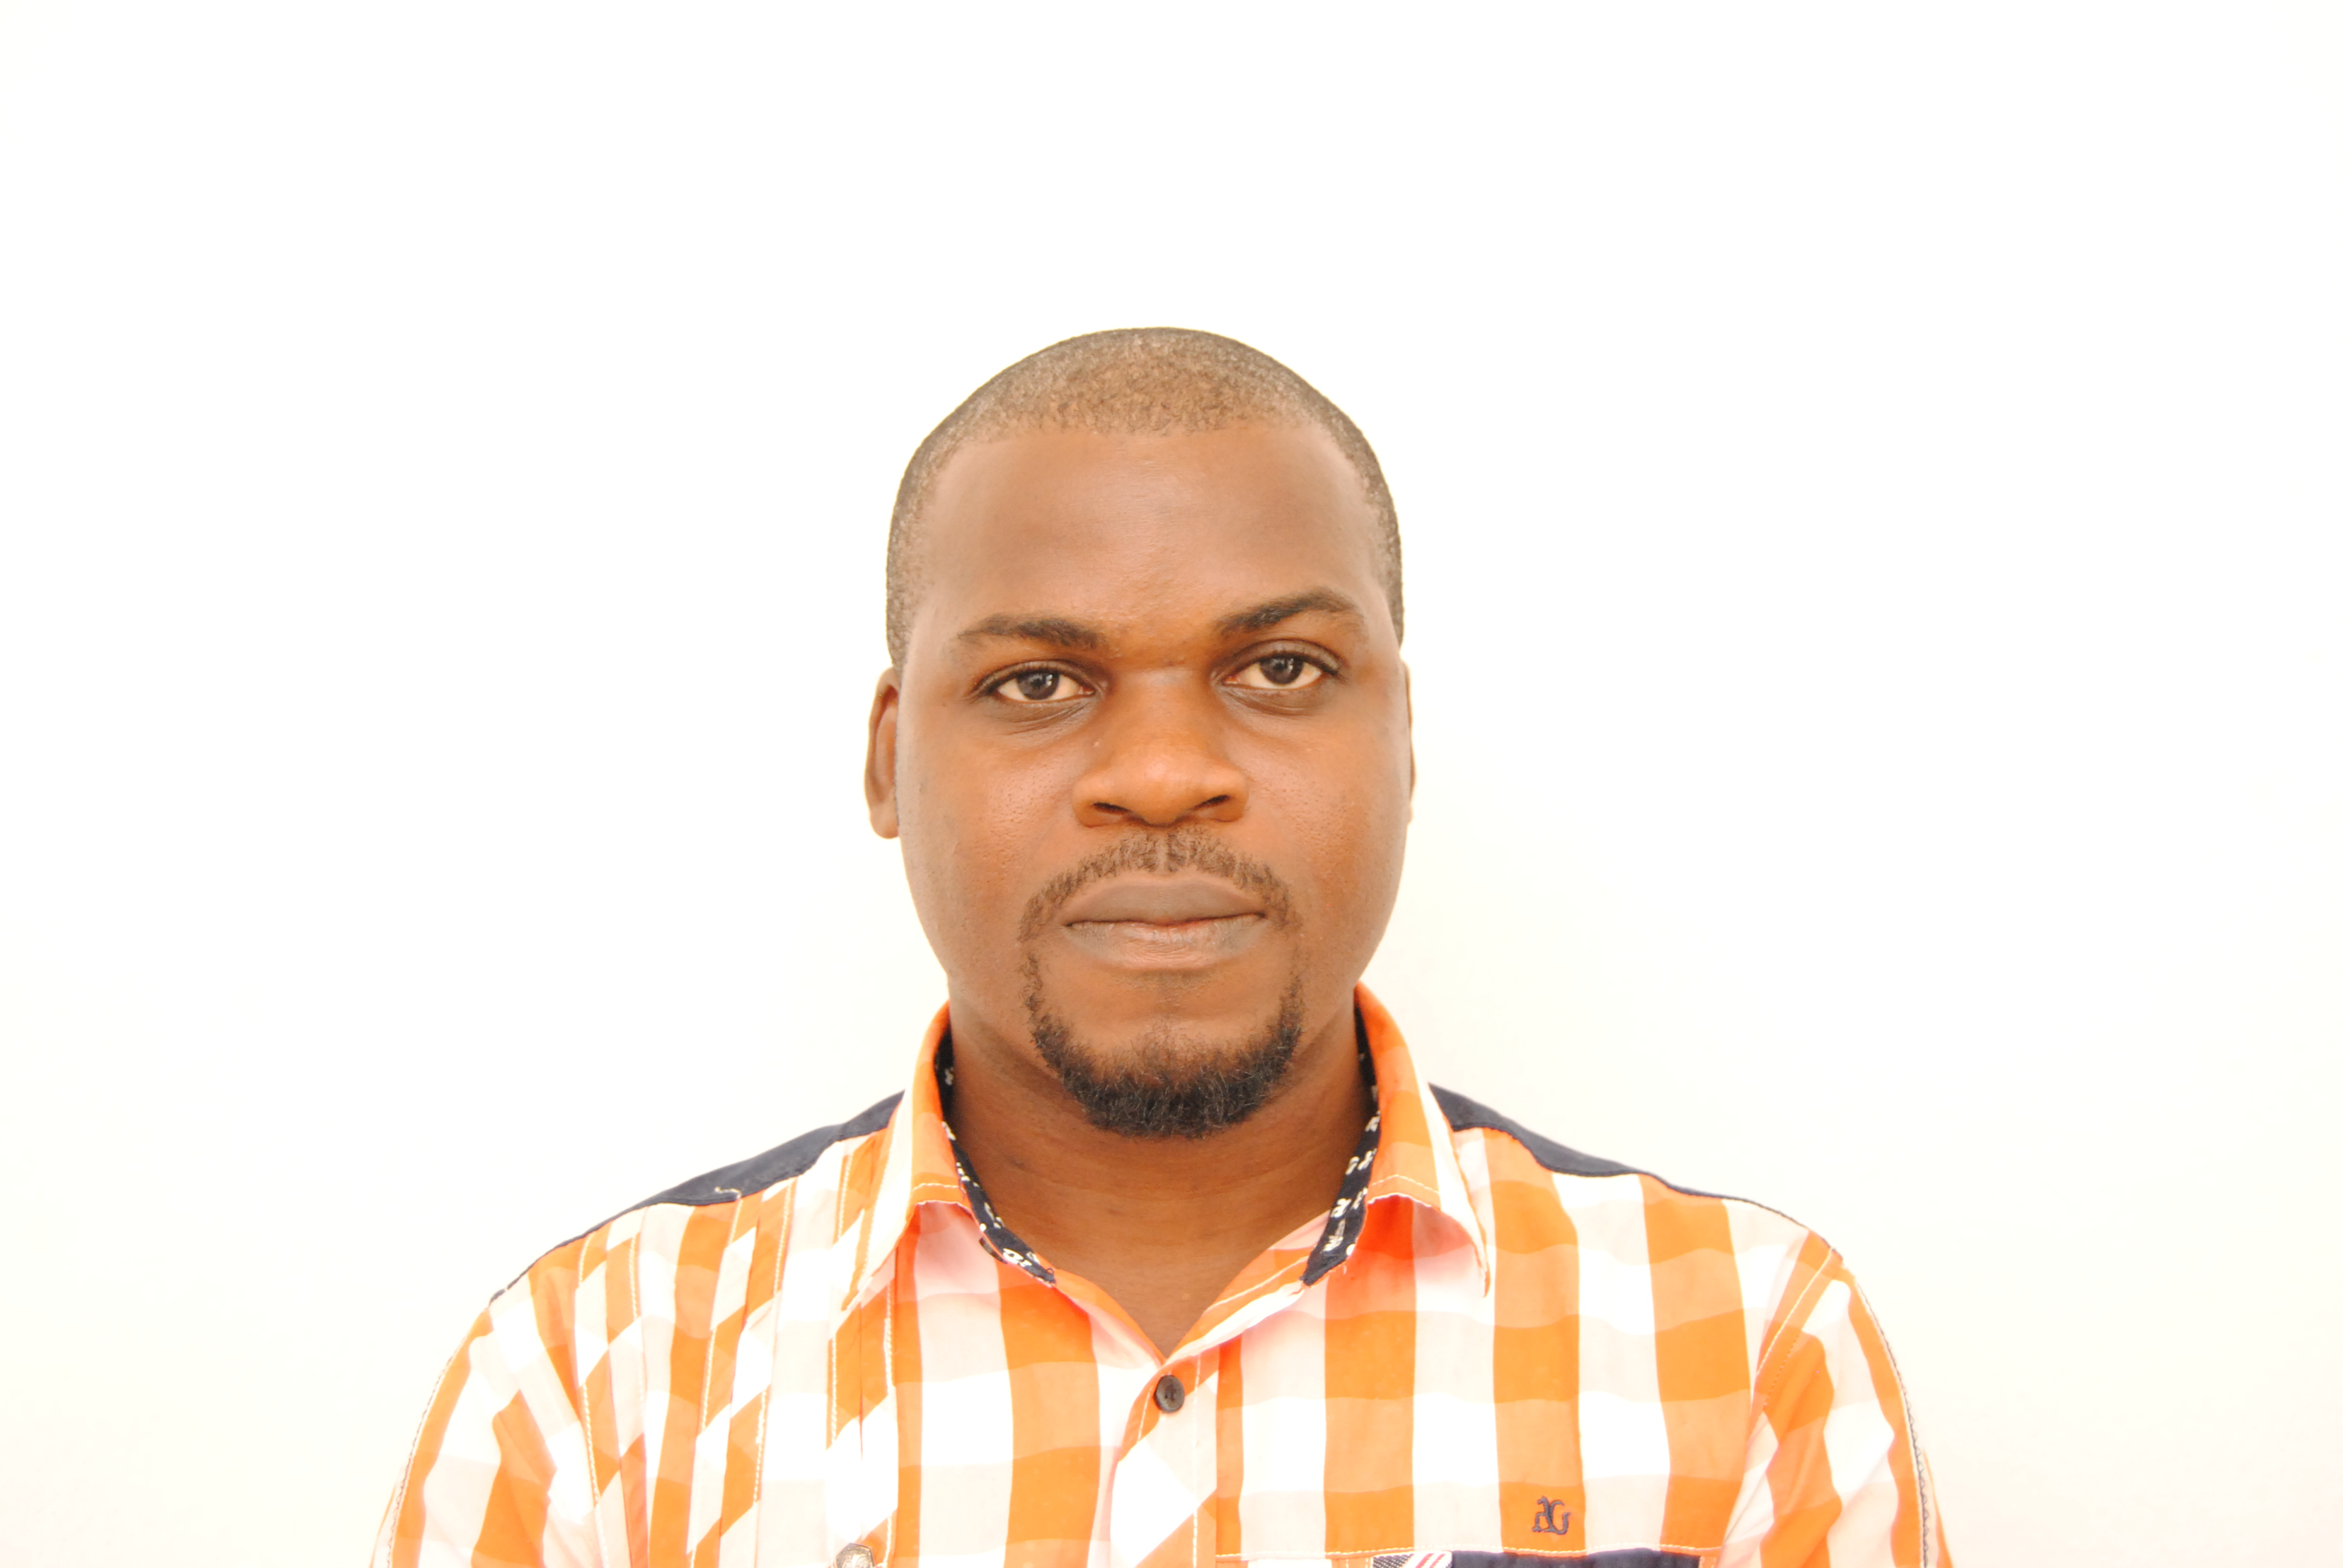 Taiwo Afolayan - the spark youth empowerment platforms in Nigeria